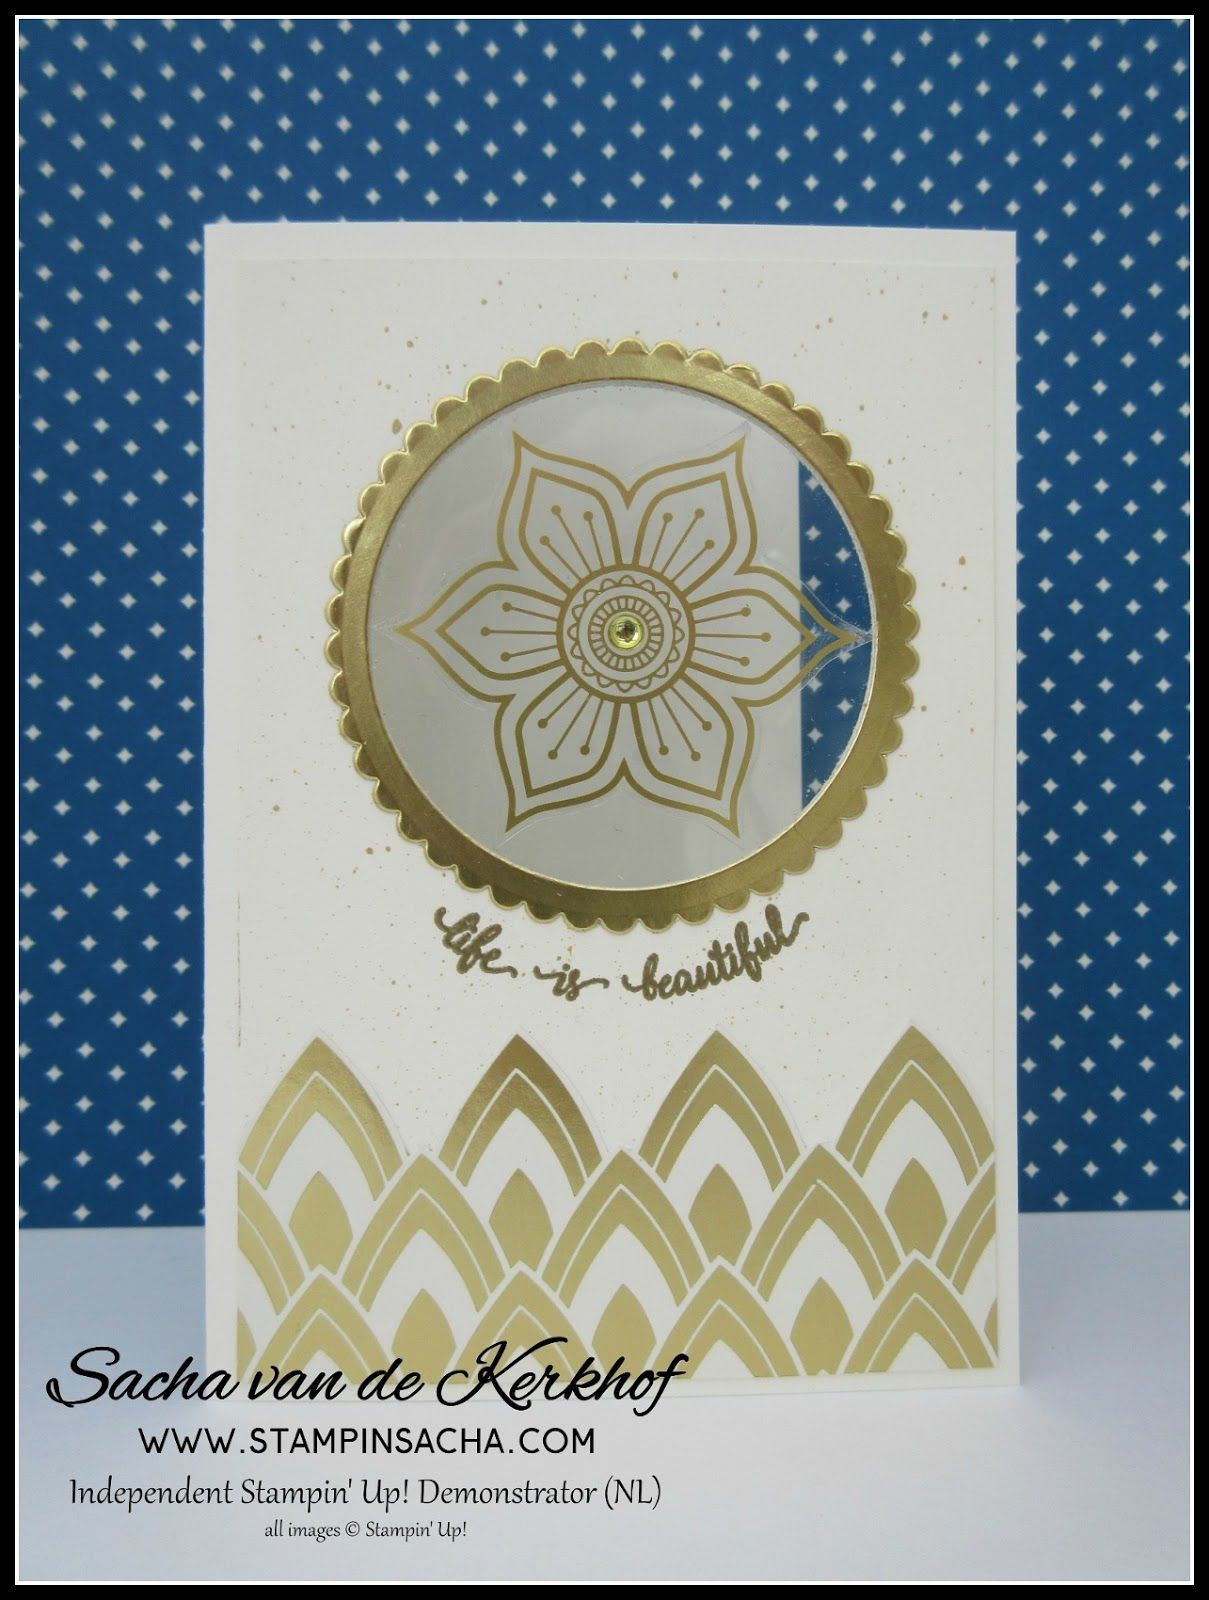 Window sheet with gold foil border eastern palace pinterest window sheet with gold foil border clear cardhandmade greetingsstampin m4hsunfo